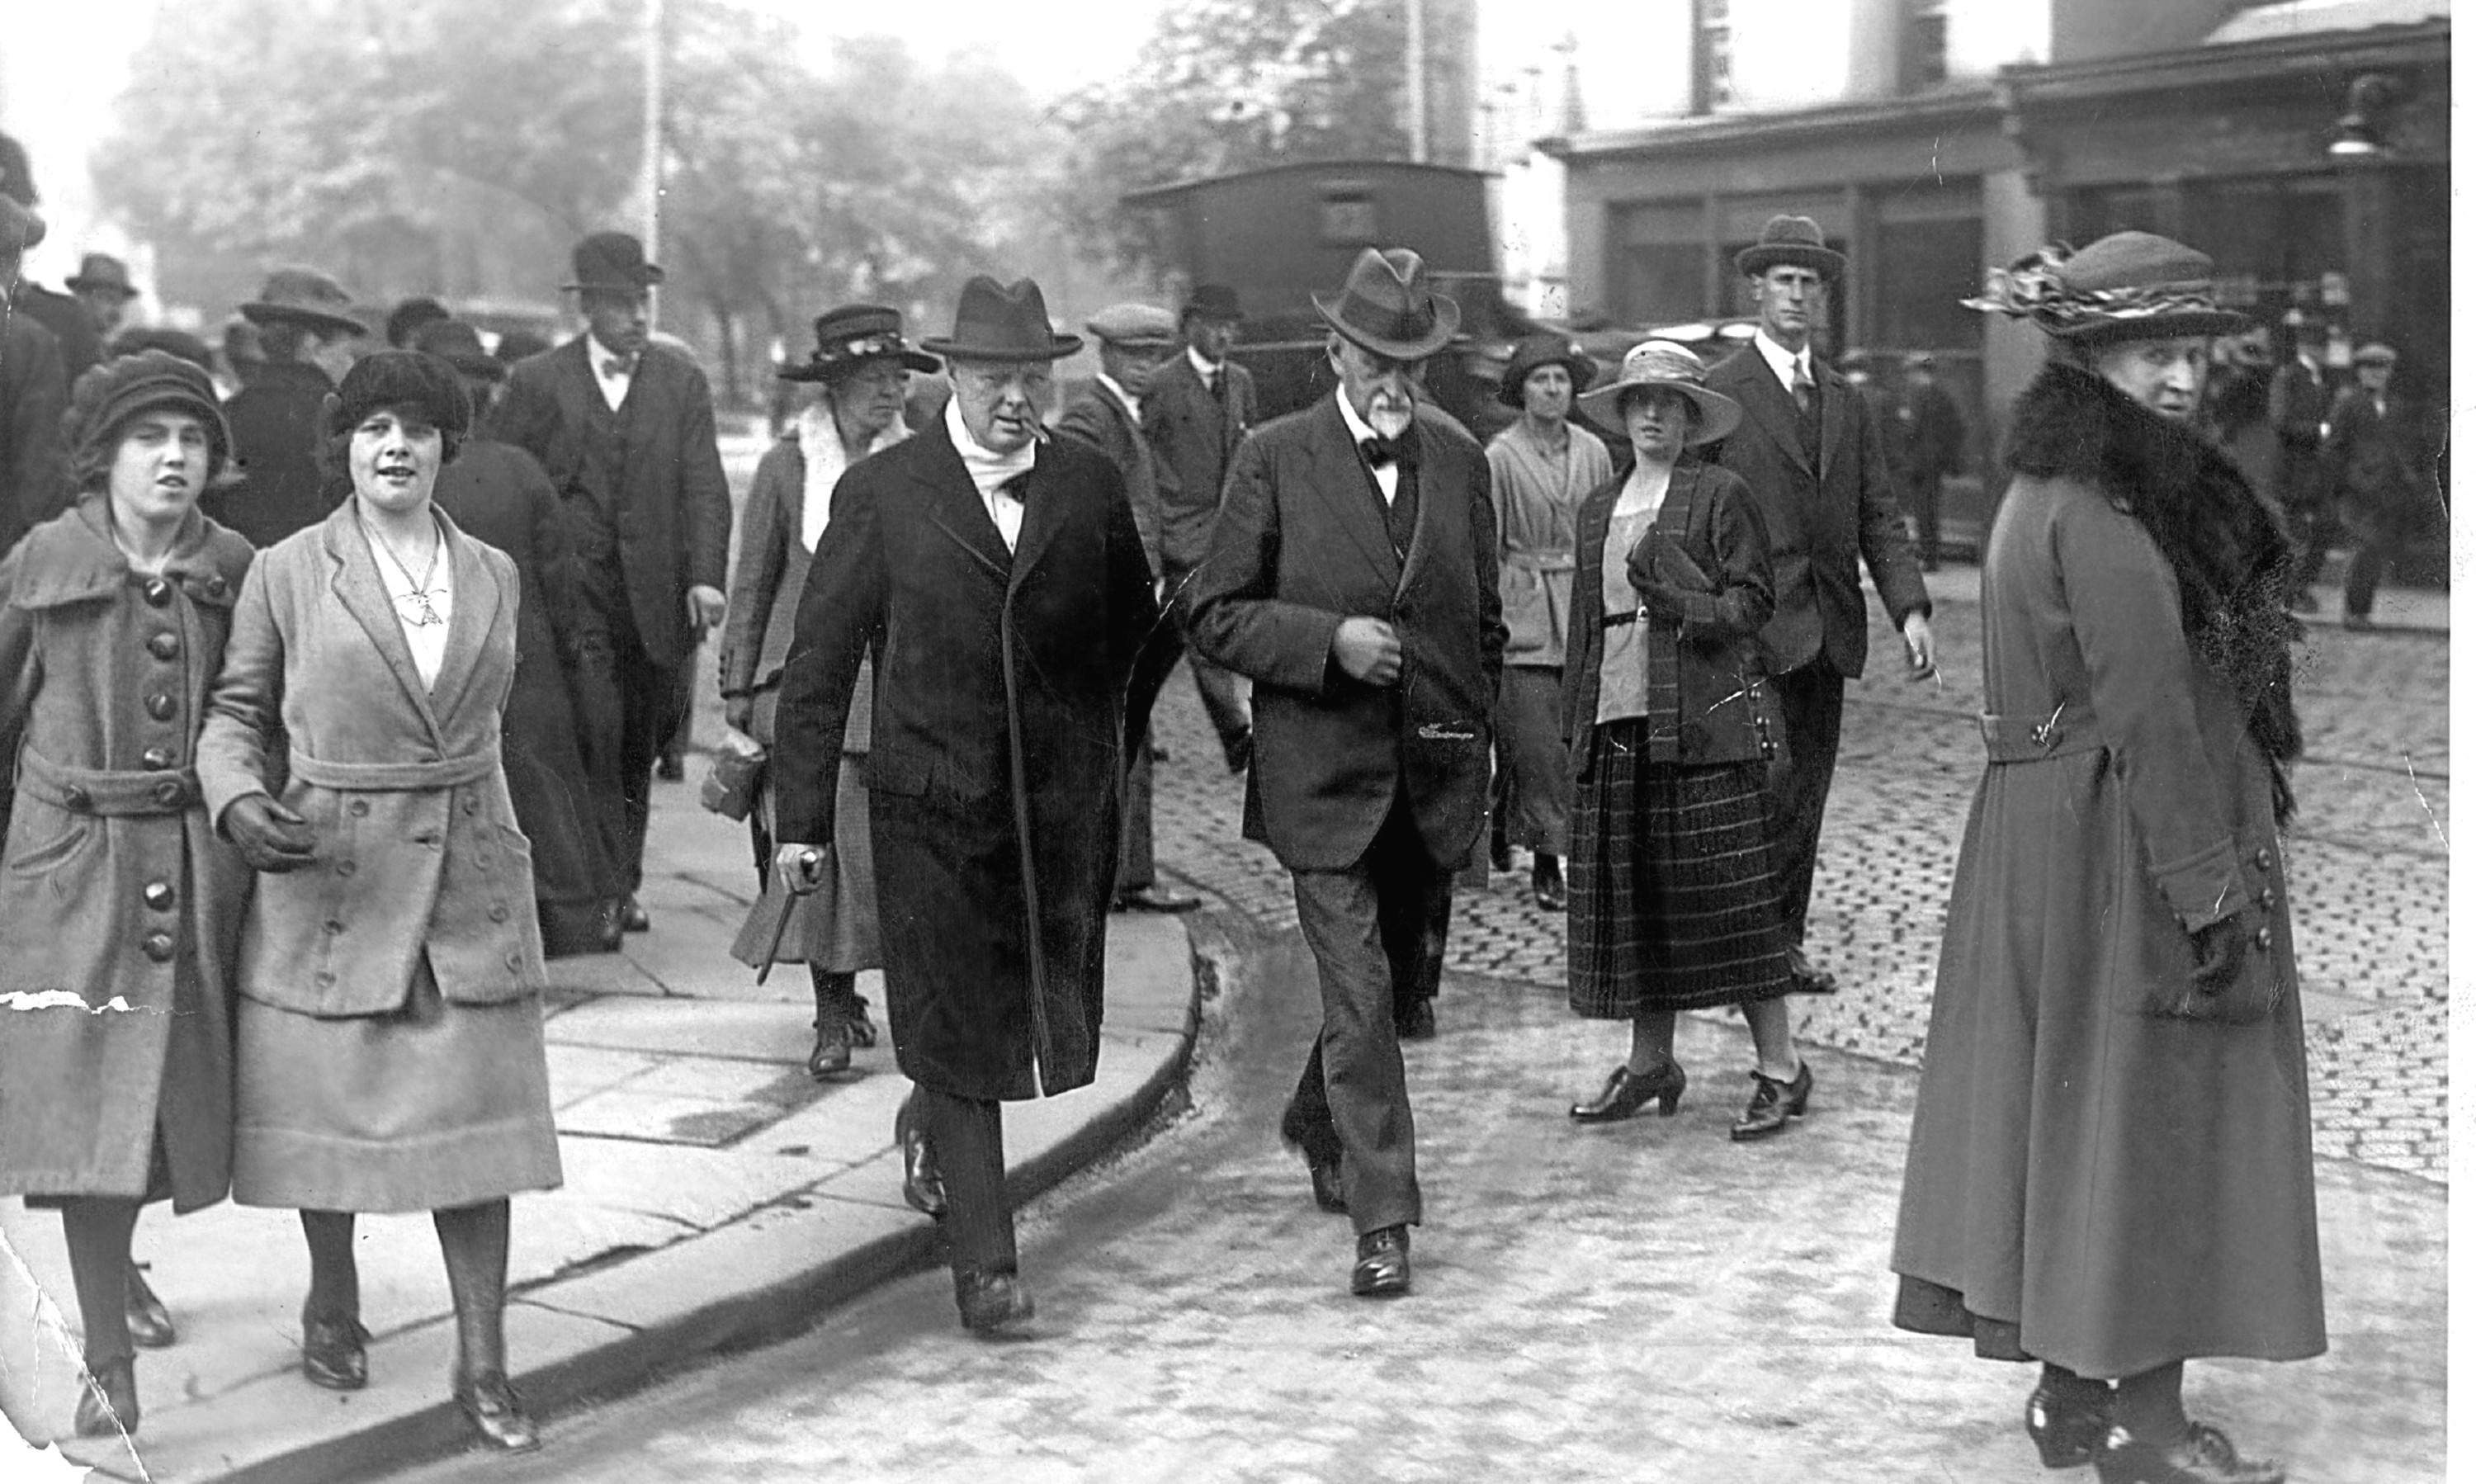 Winston Churchill and his entourage in his Dundee parliamentary constituency.